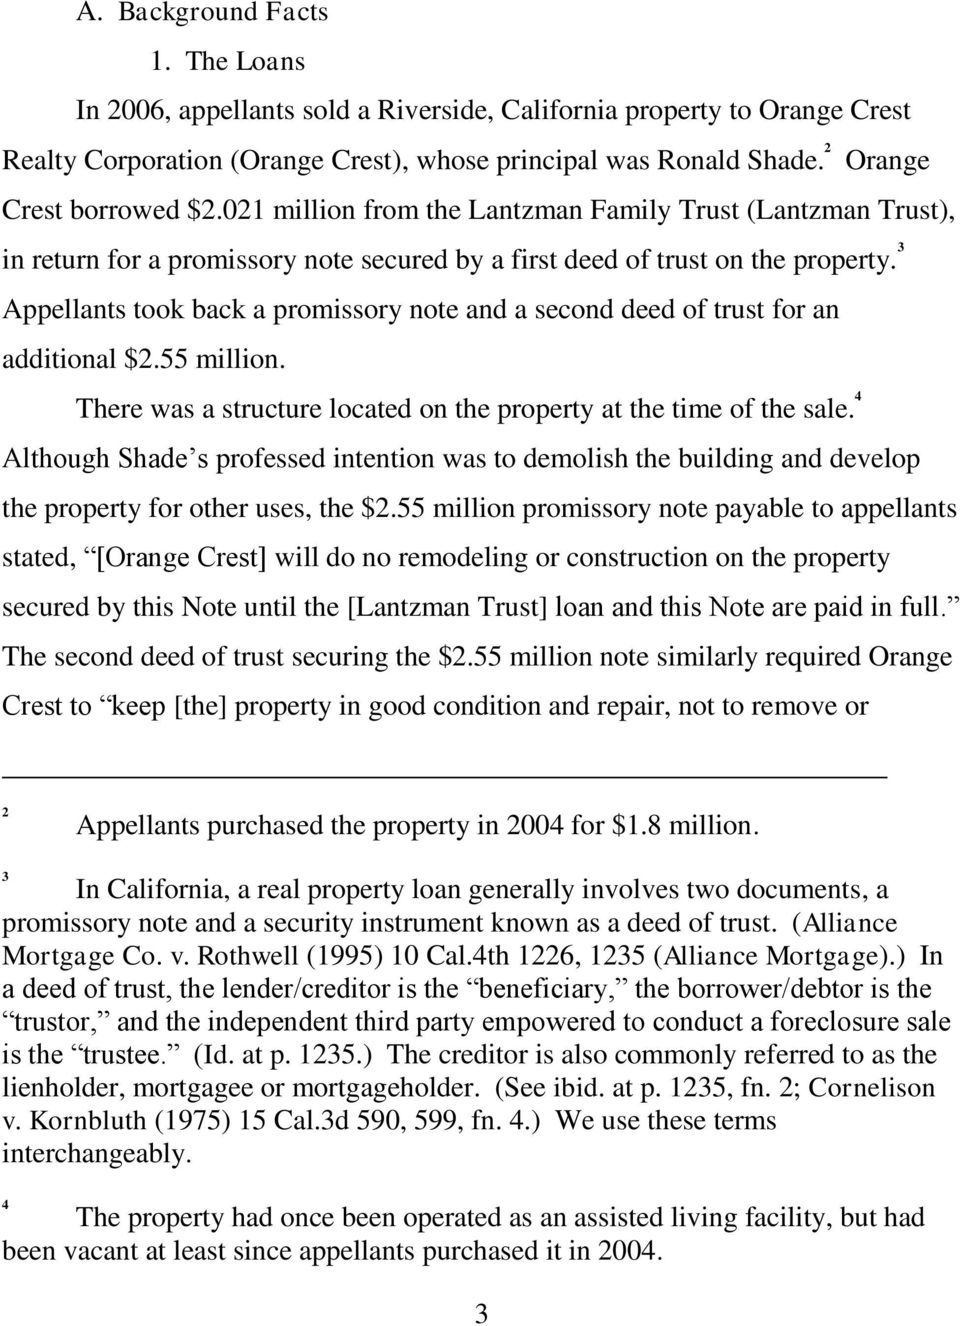 3 Appellants took back a promissory note and a second deed of trust for an additional $2.55 million. There was a structure located on the property at the time of the sale.